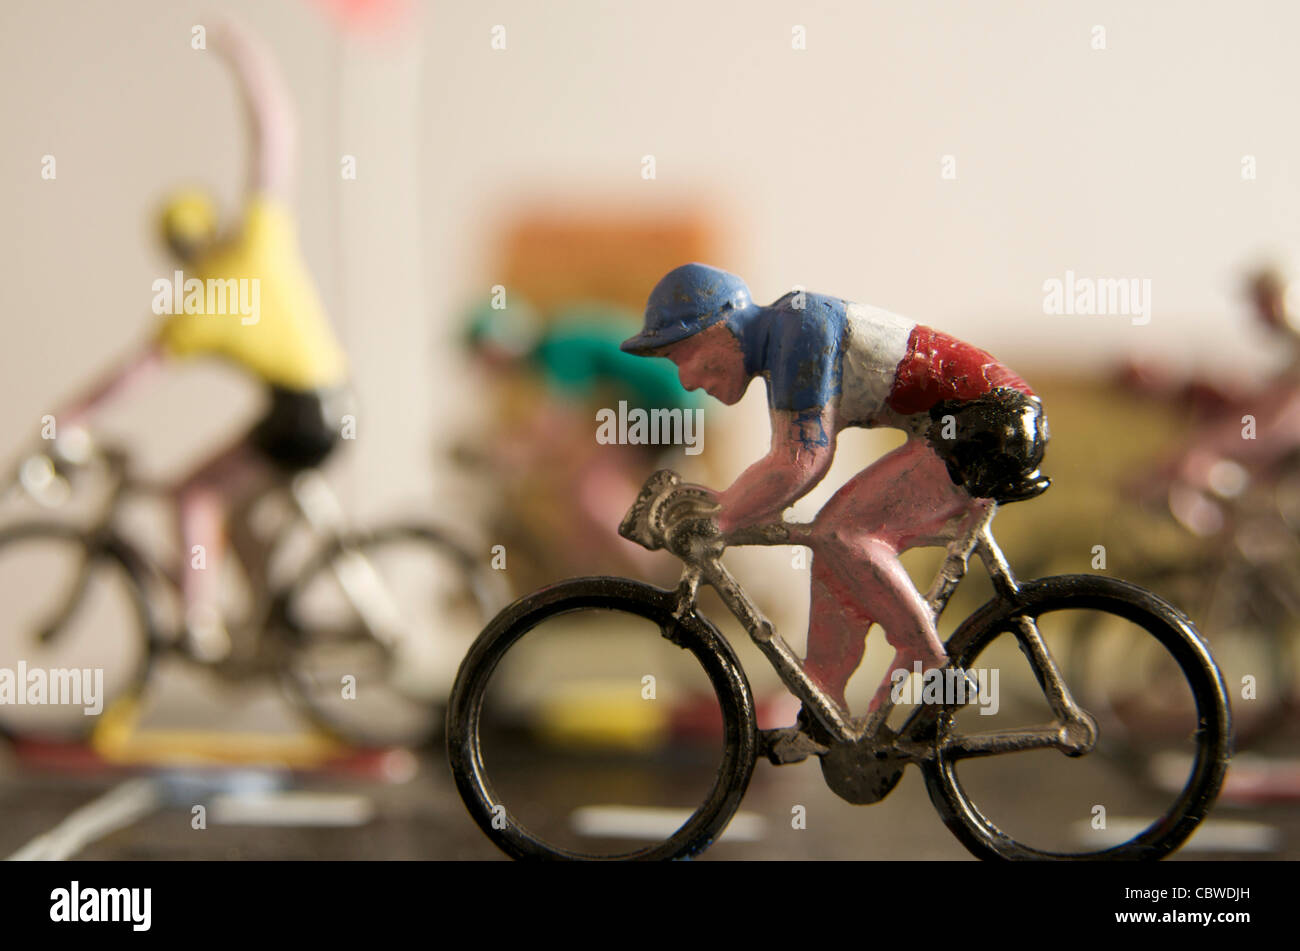 Cyclists, figurines - winner concept - Stock Image